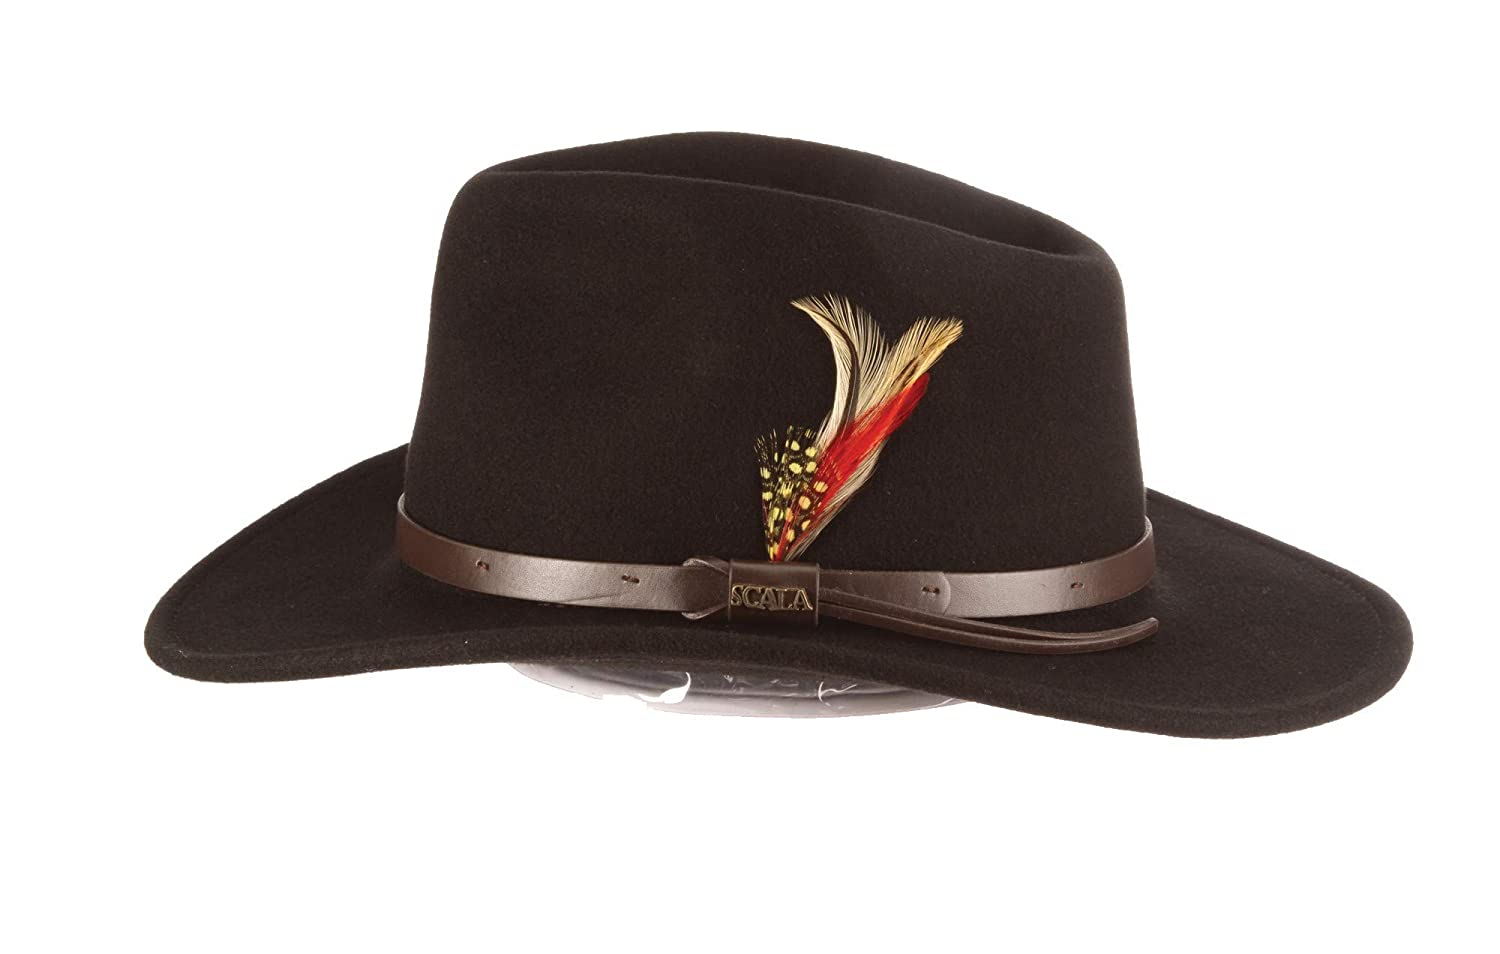 3d3197b4 Scala Classico Men's Crushable Felt Outback Hat at Amazon Men's Clothing  store: Cowboy Hats